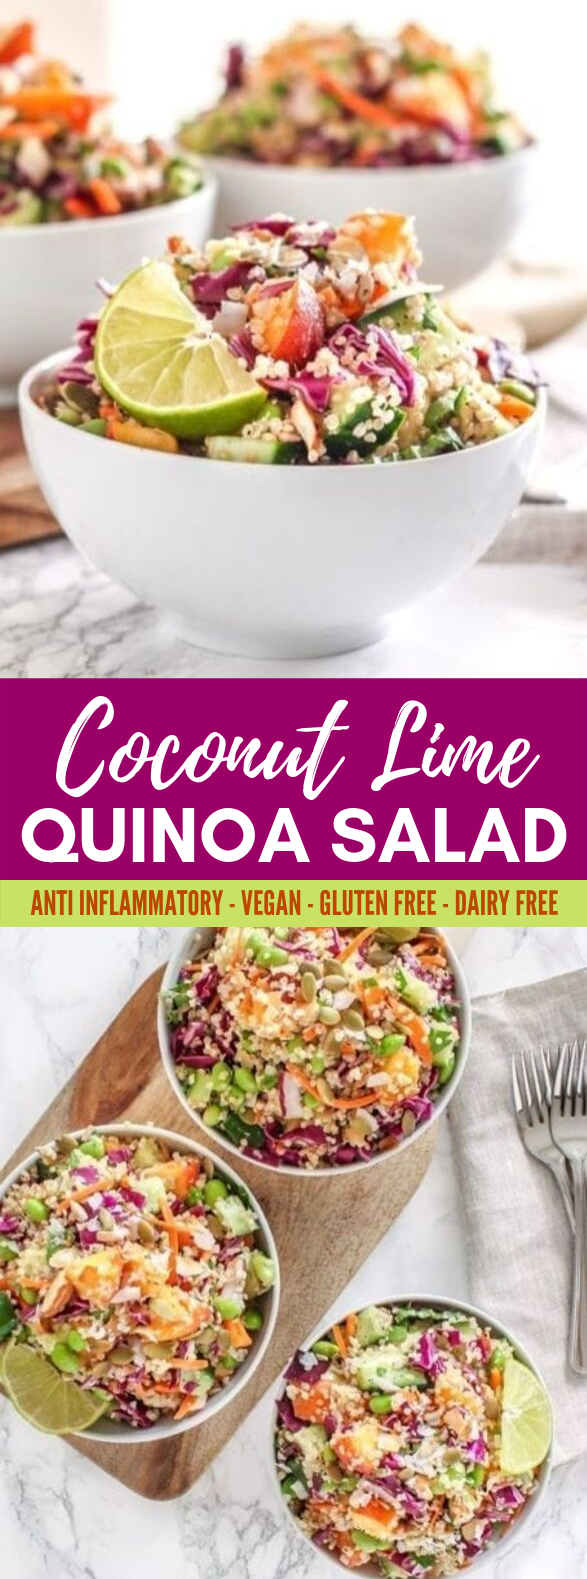 Coconut Lime Quinoa Salad #vegetarian #veggies